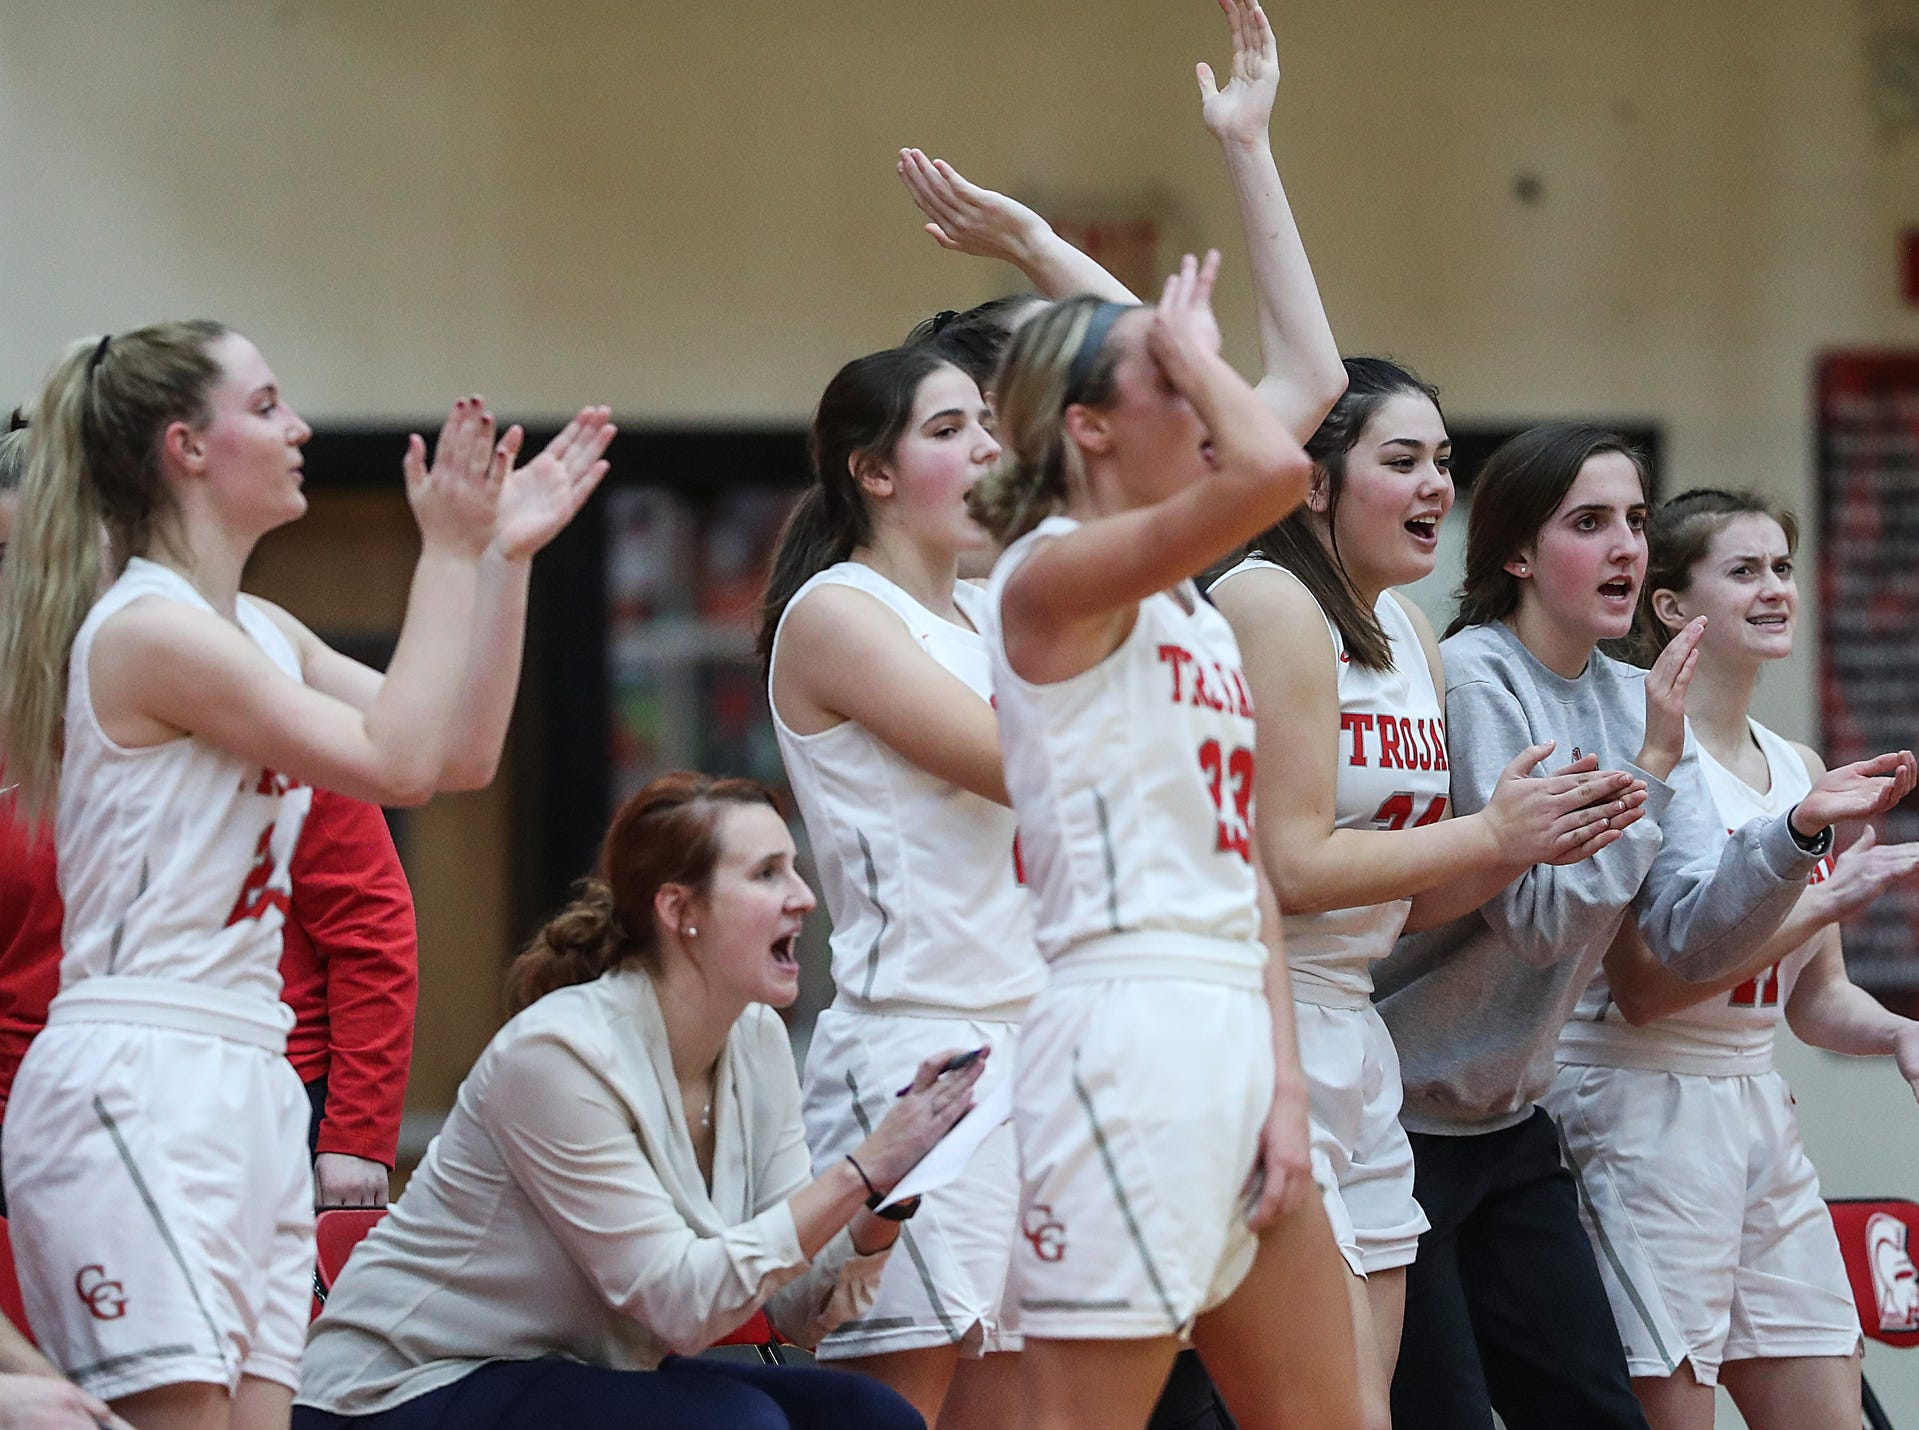 The Center Grove Trojans celebrate after guard Mary Wilson (33) scored three points in the second half of the game at Center Grove High School in Greenwood, Ind., Thursday, Jan. 10, 2019. Center Grove defeated North Central, 51-44.